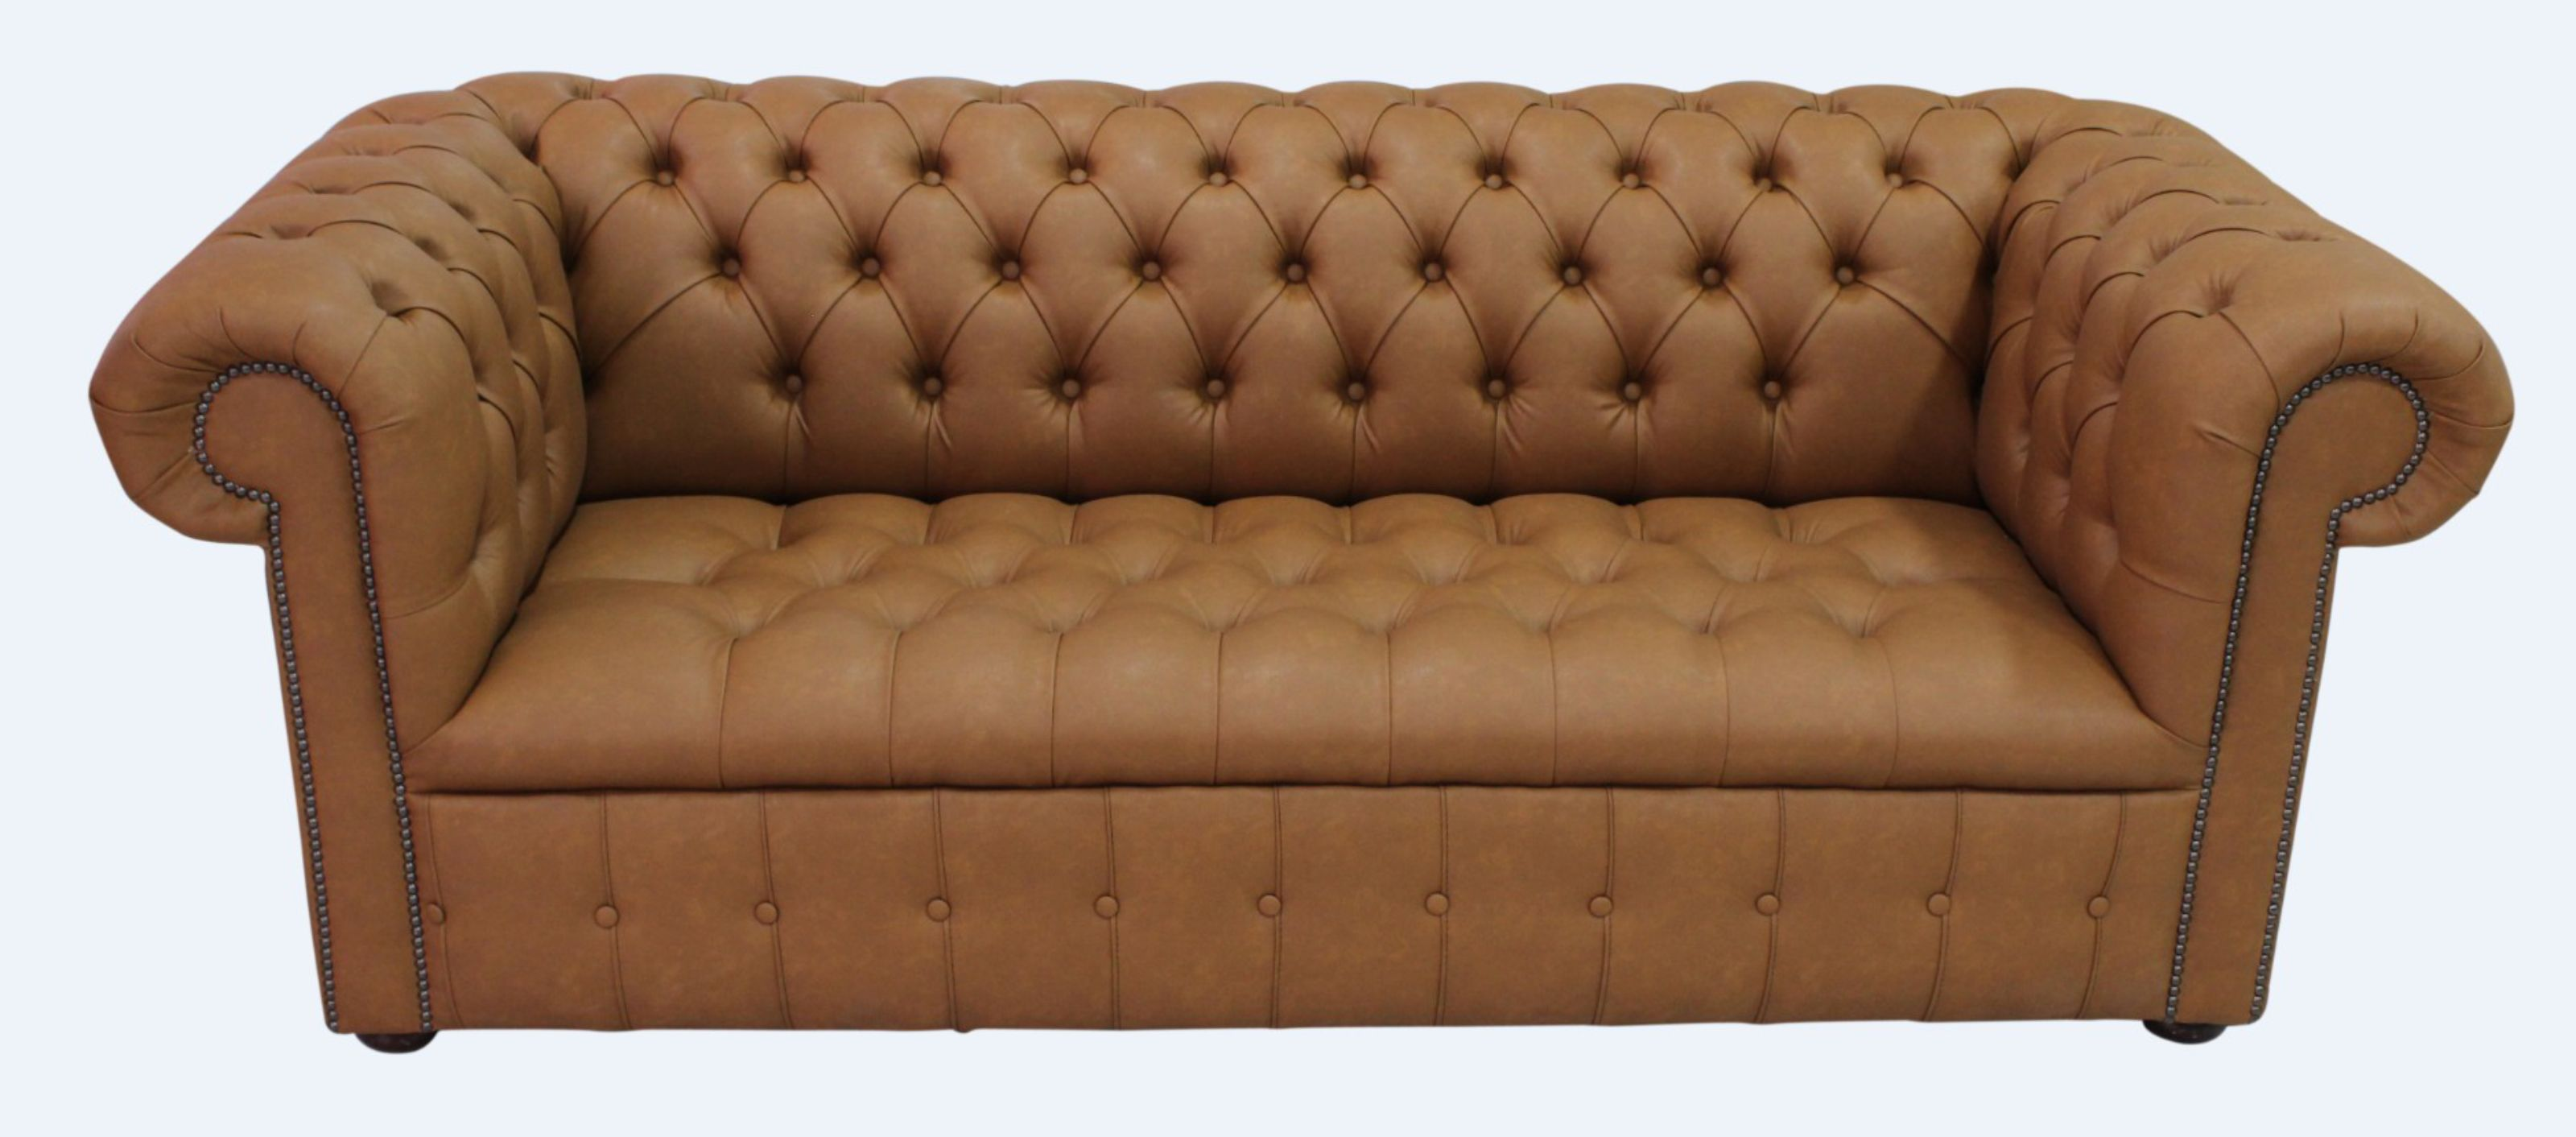 Prime Chesterfield 3 Seater Buttoned Seat Infinity Camel Faux Leather Sofa Offer Alphanode Cool Chair Designs And Ideas Alphanodeonline